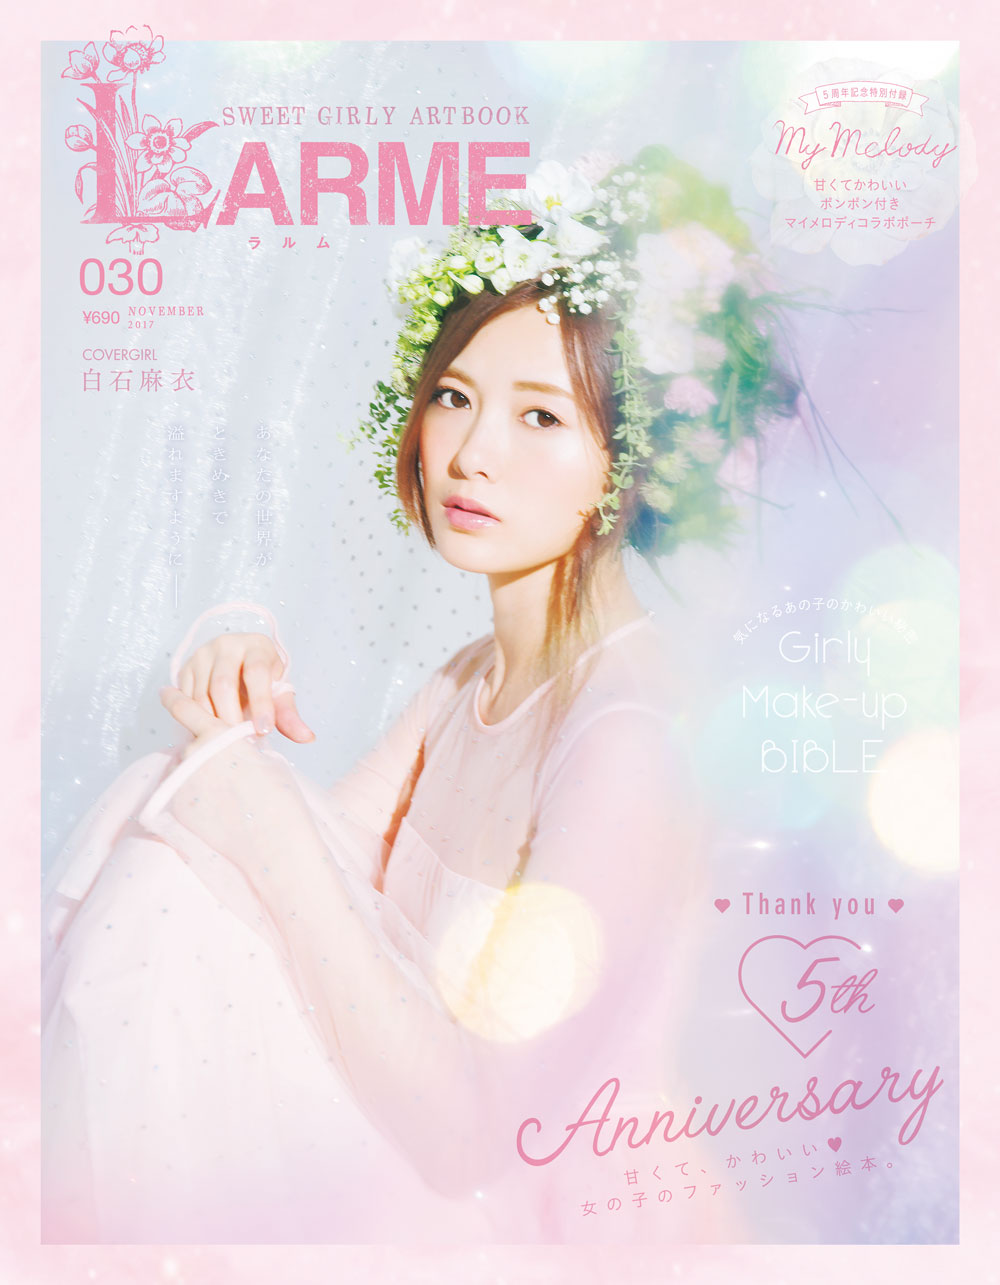 Larme Celebrates 5th Anniversary With